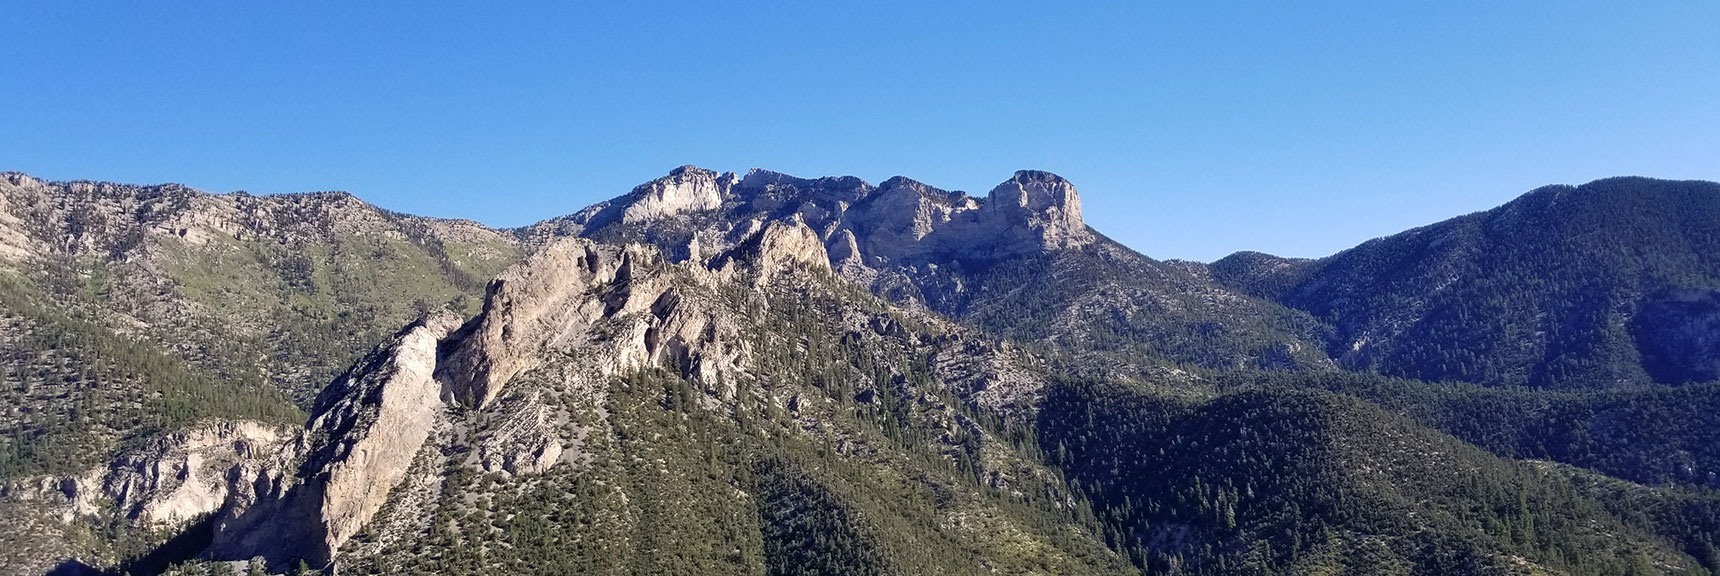 View of Mummy Mountain from Cathedral Rock Summit, Mt. Charleston Wilderness, Nevada